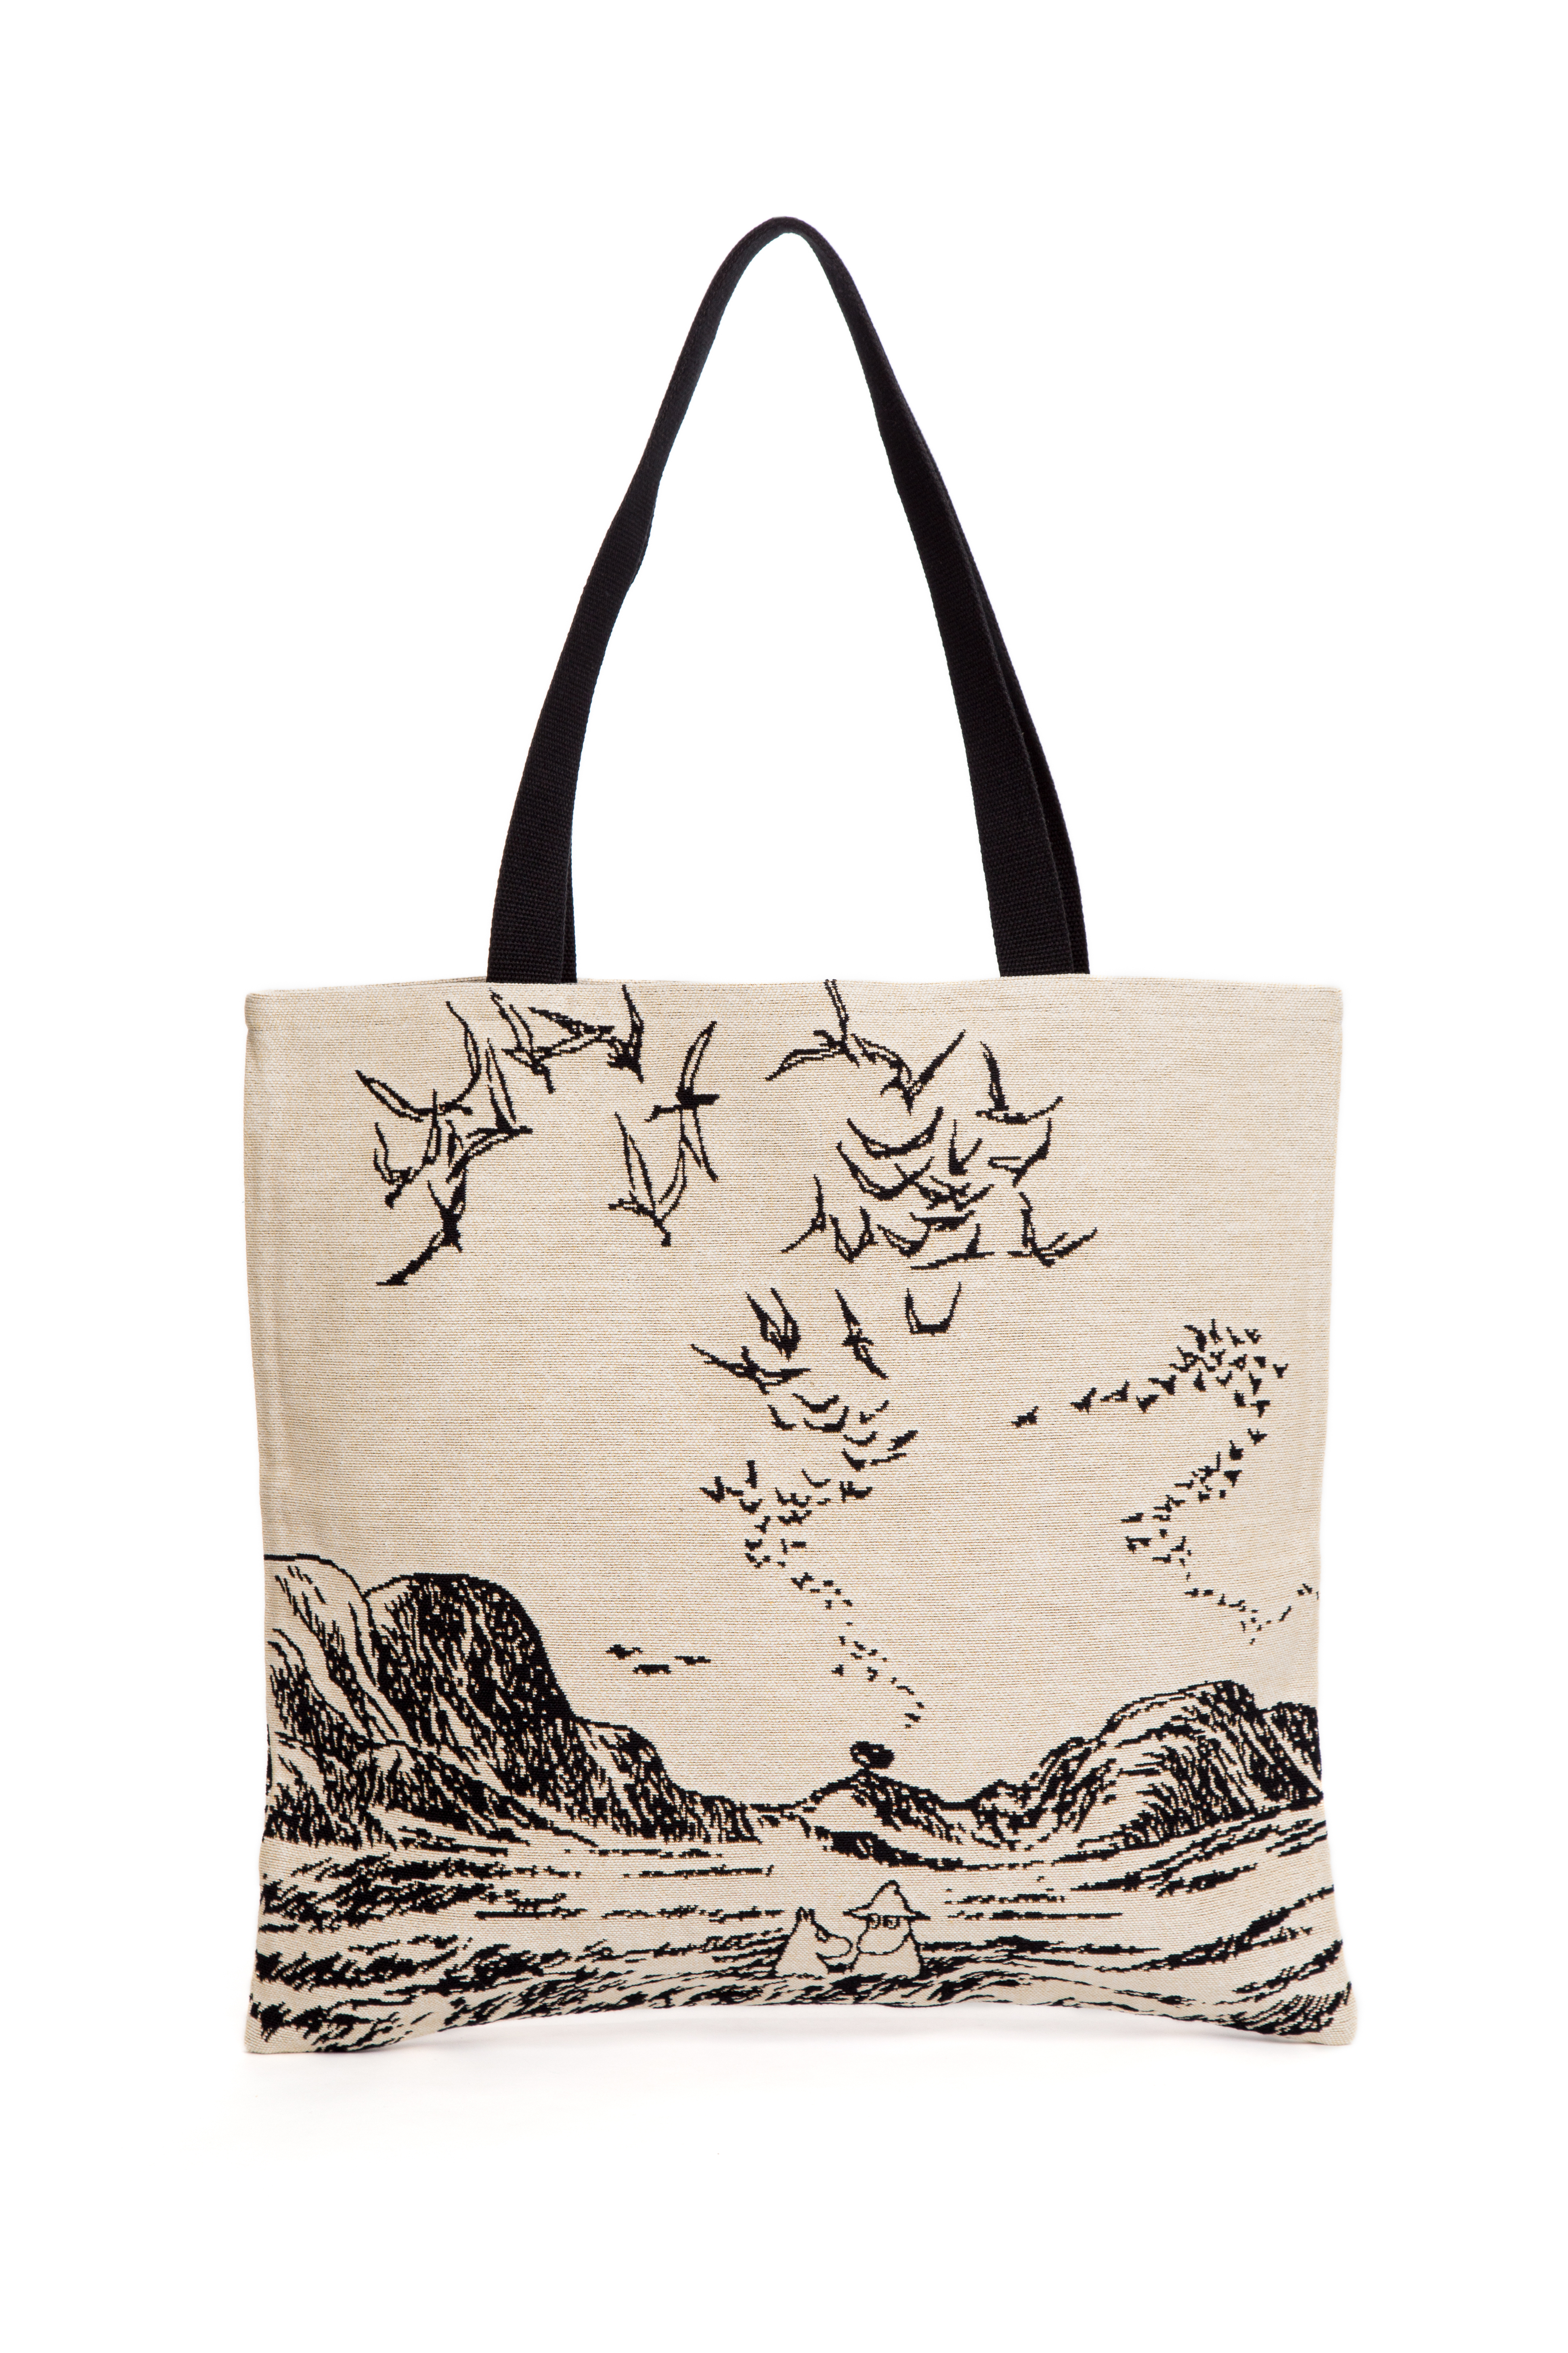 Aurora Decorari Moomin Gobelin Big Bag Moomins in Sea 015BB